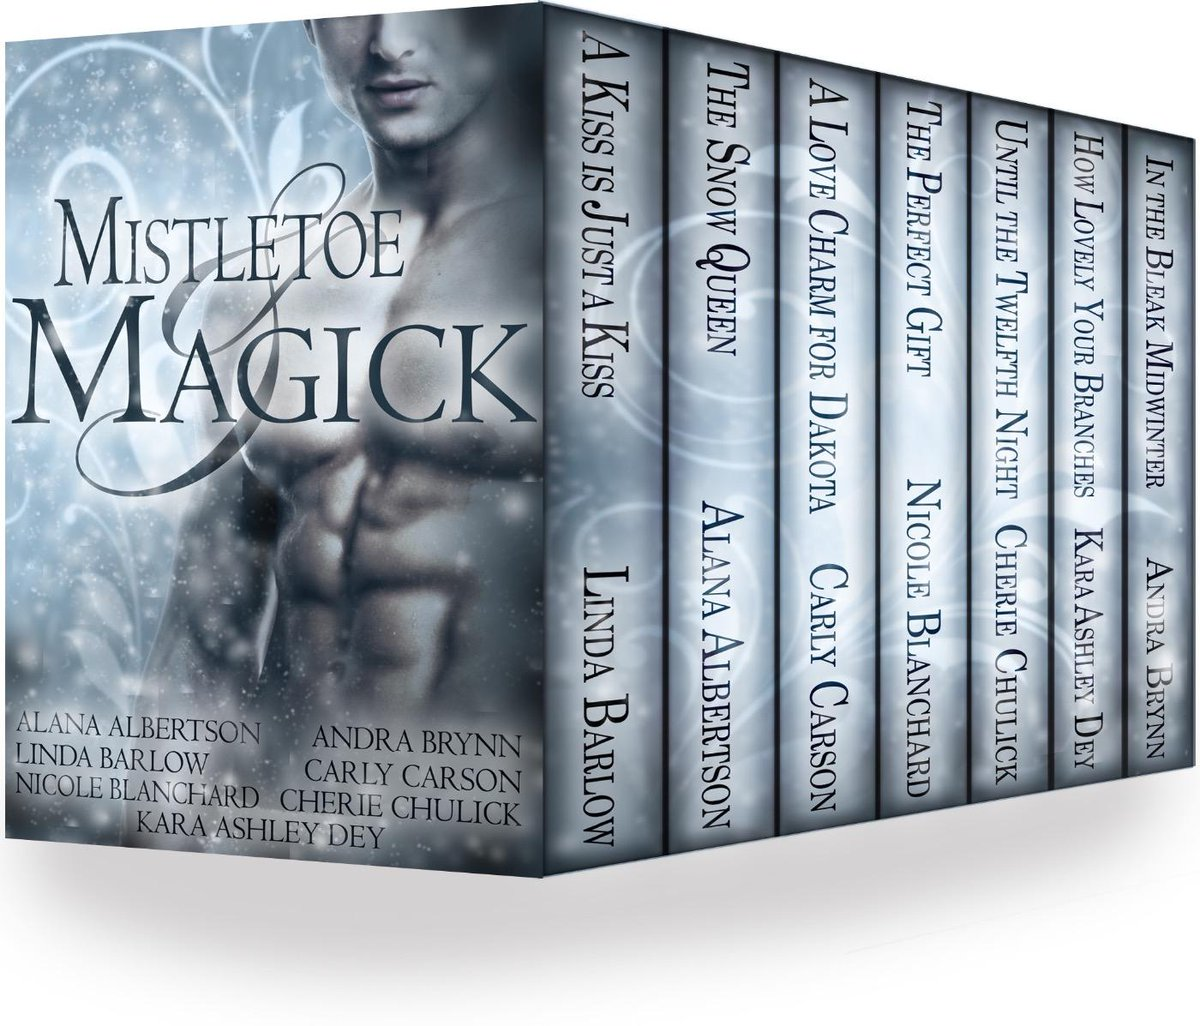 #FREE TODAY #romance anthology, Mistletoe & Magick plus giveaway http://t.co/lOwsmnzwvB… http://t.co/dl1Z9OUqC3 http://t.co/nSSZt43nVJ